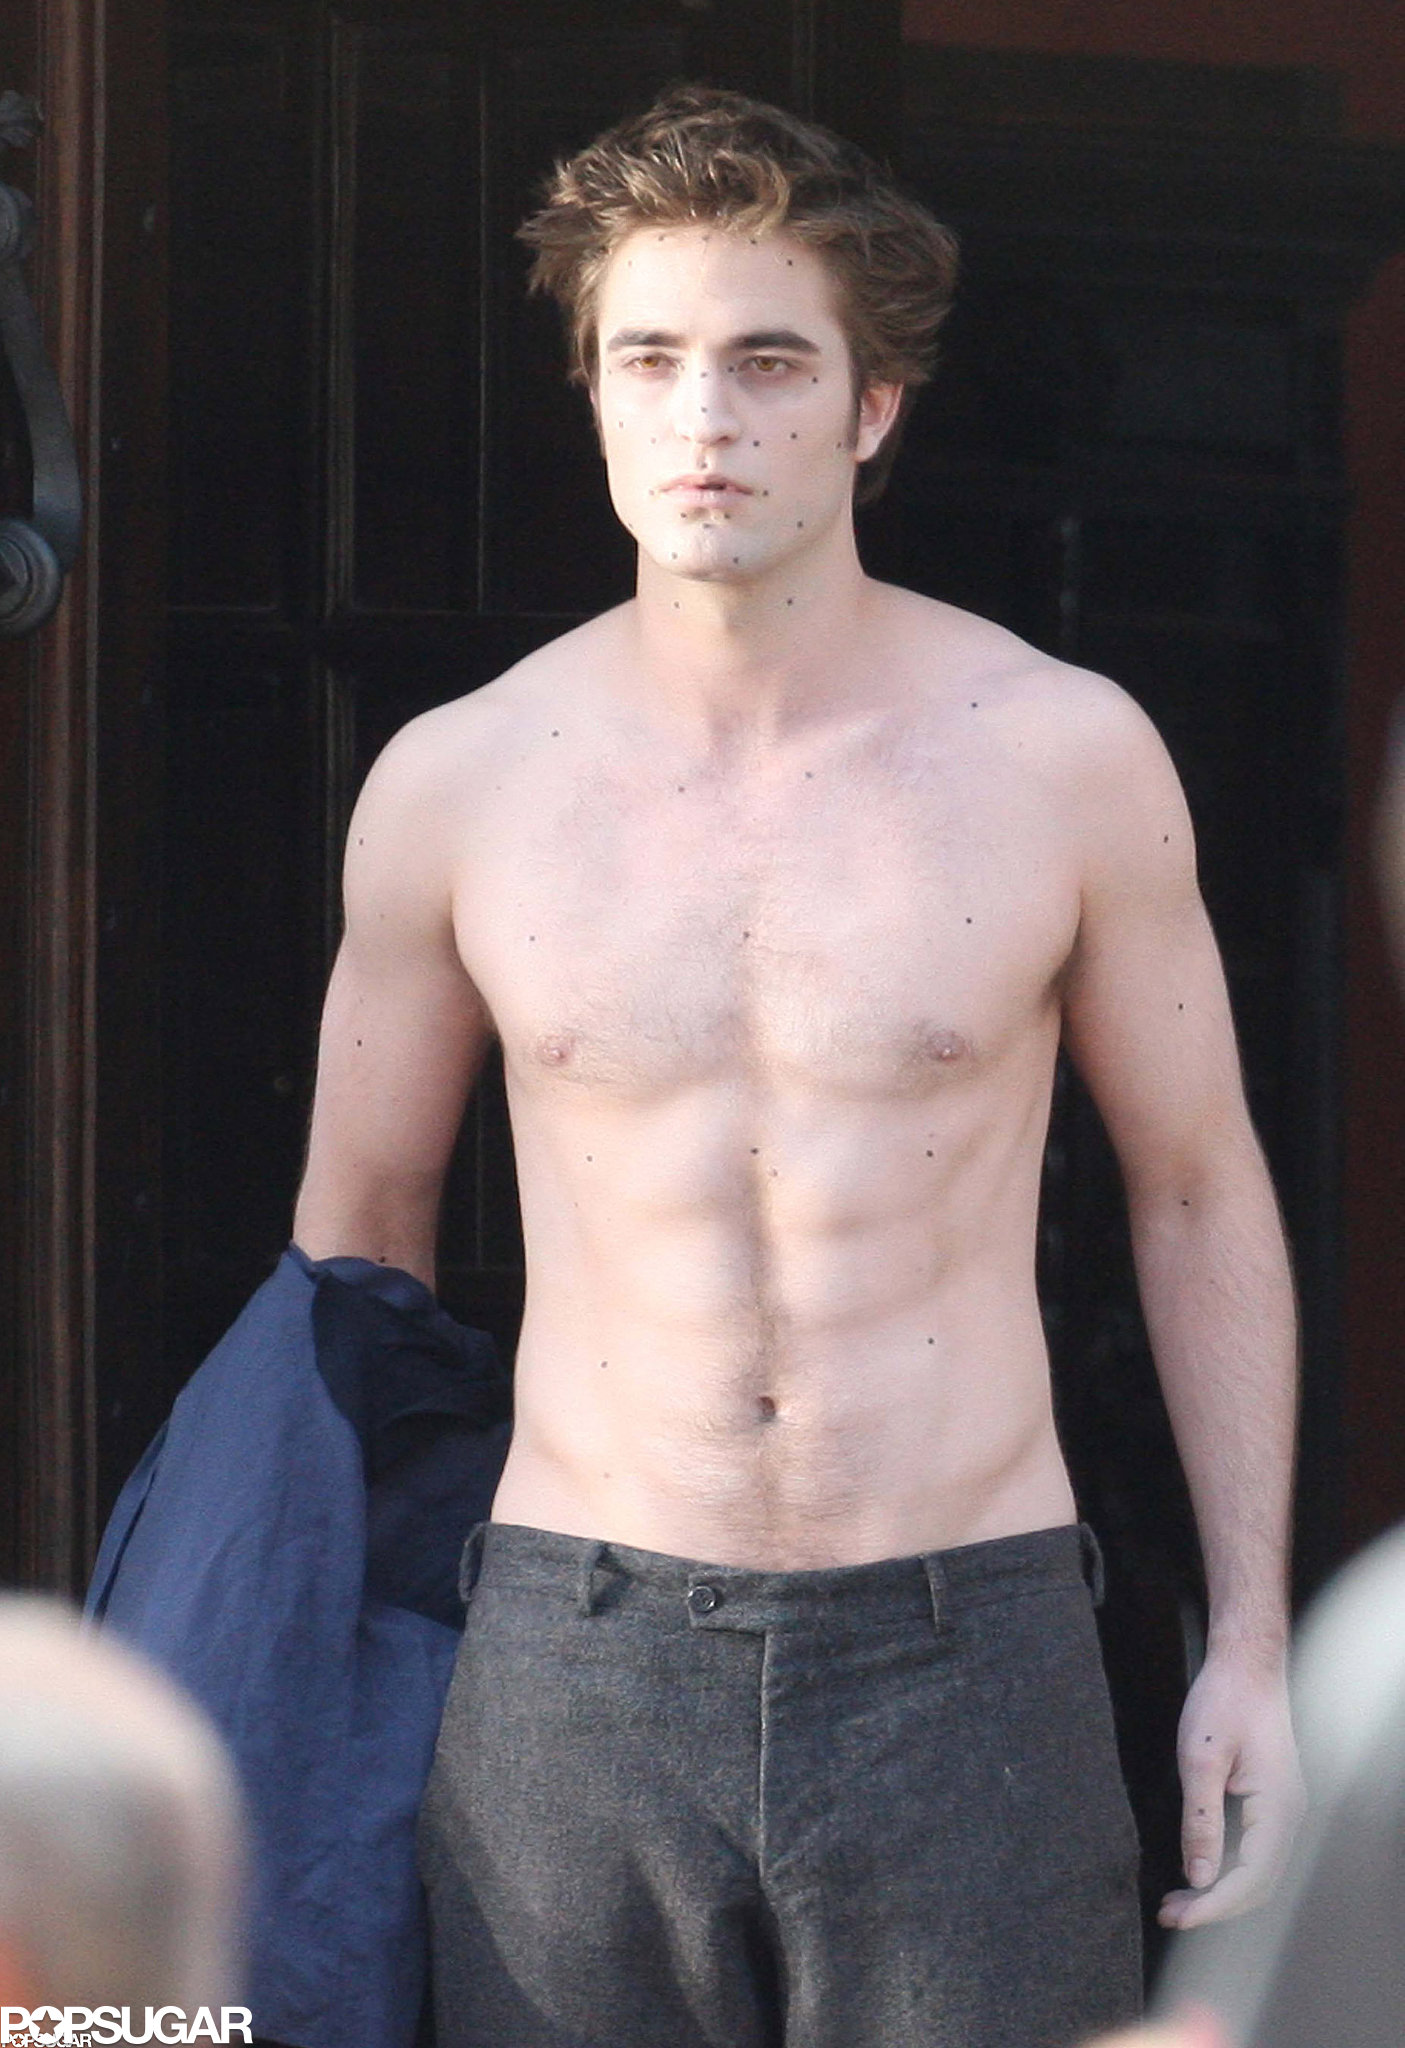 Robert Pattinson went shirtless for the cameras while in Italy for New Moon in May 2009.